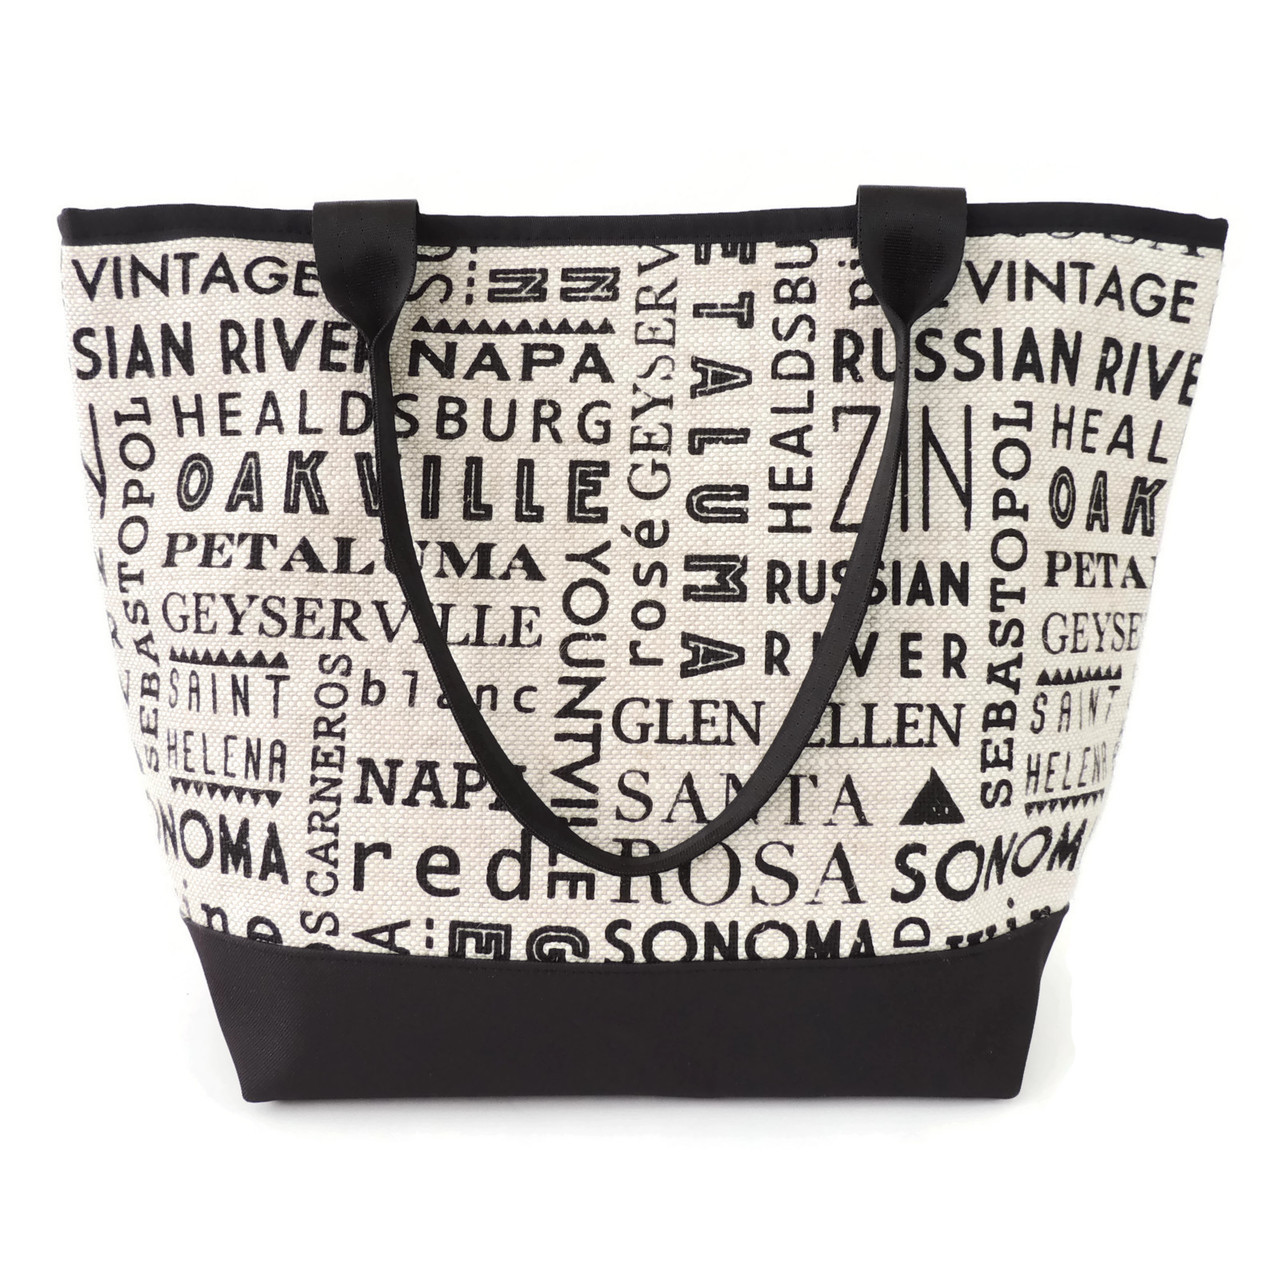 Signature Tote in Wine Country Linen